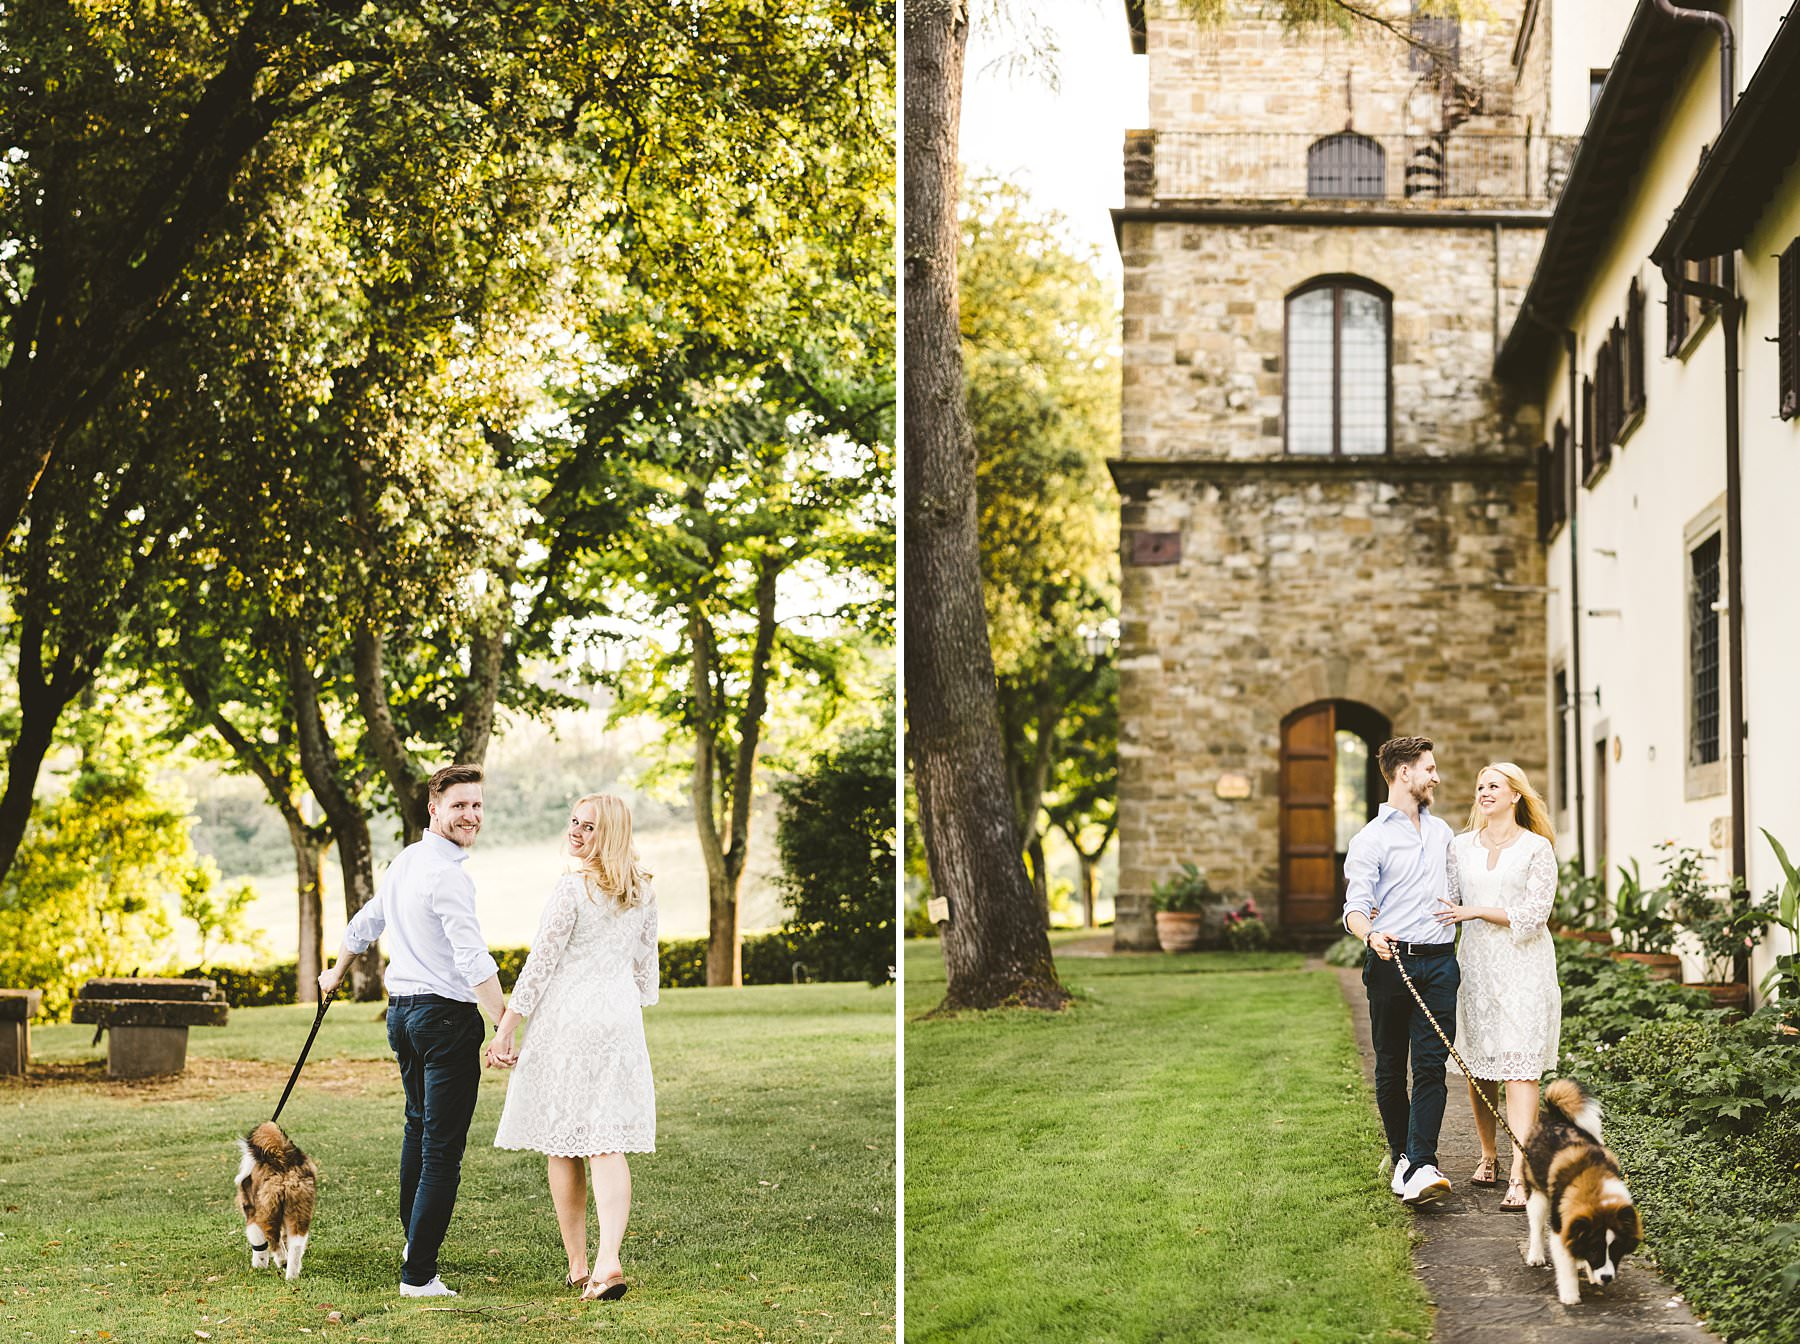 Engagement photo with a wonderful furry friend at Poggio Tre Lune in the heart of Tuscany, a perfect location to enjoy time with your loved partner